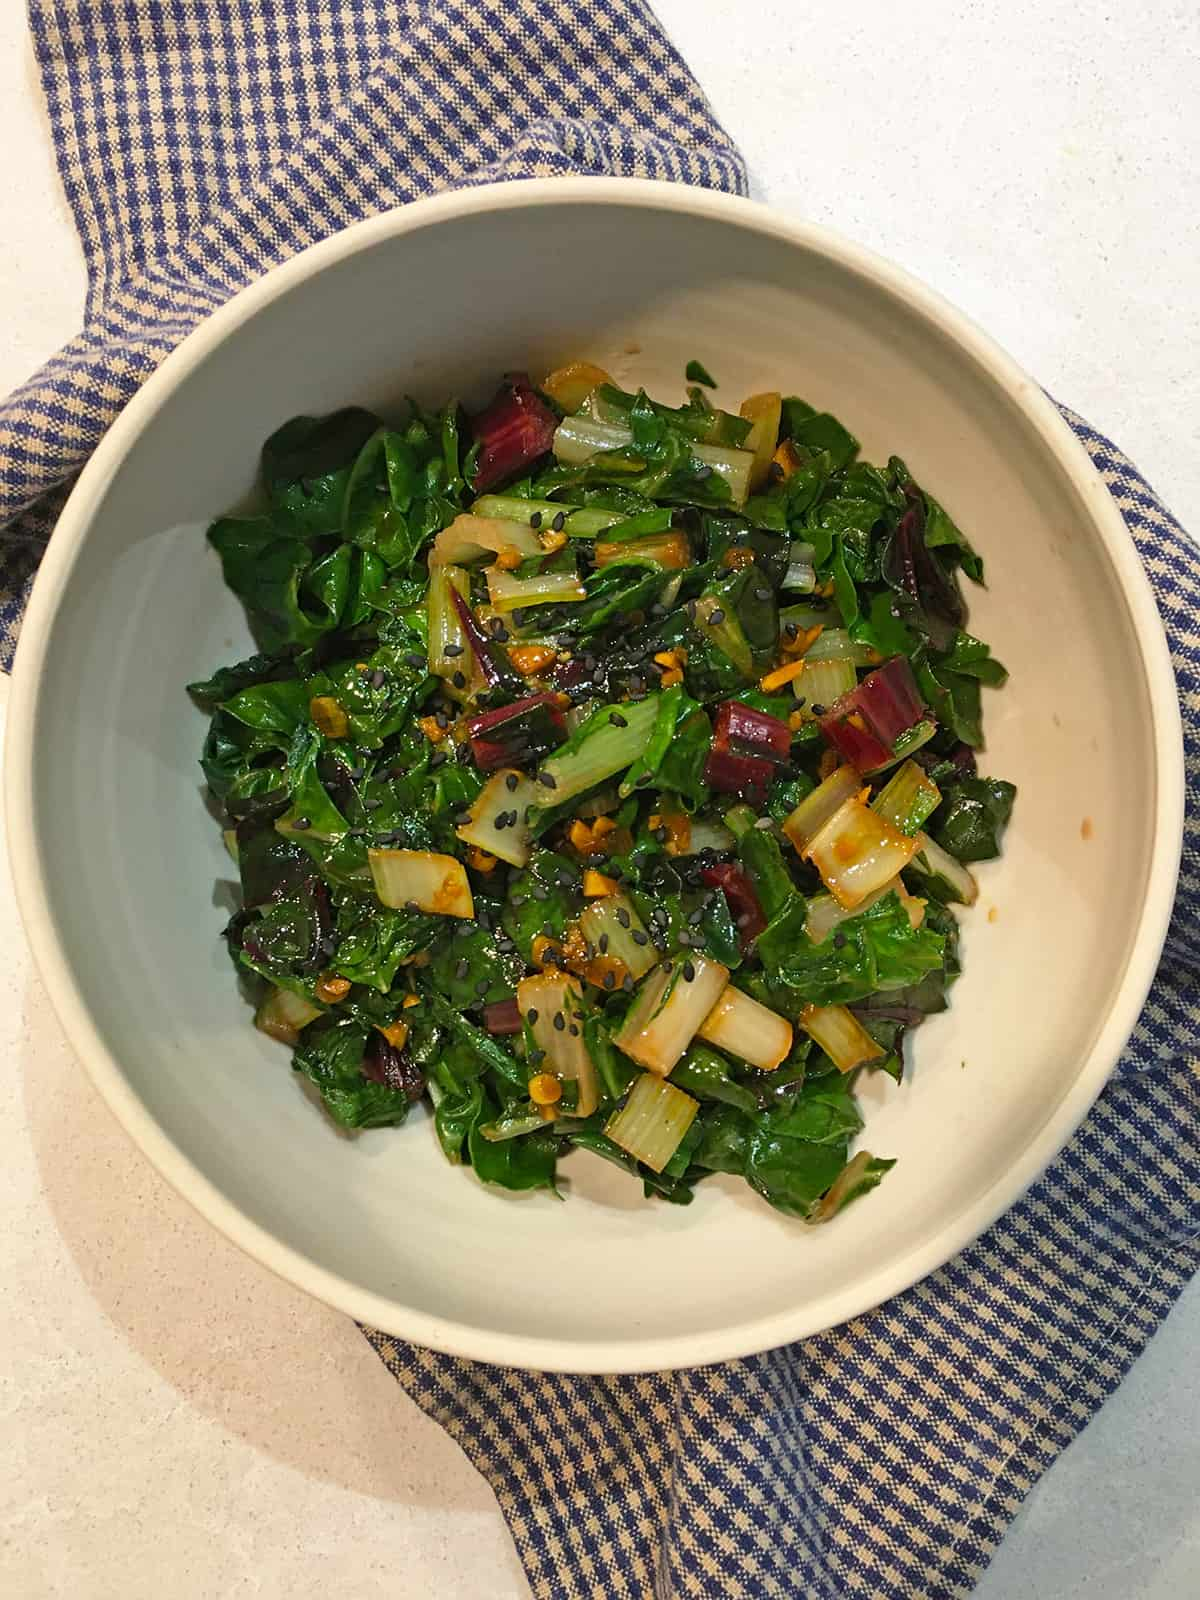 Asian sautéed Swiss chard in a tan ceramic bowl with a blue and tan checkered napkin